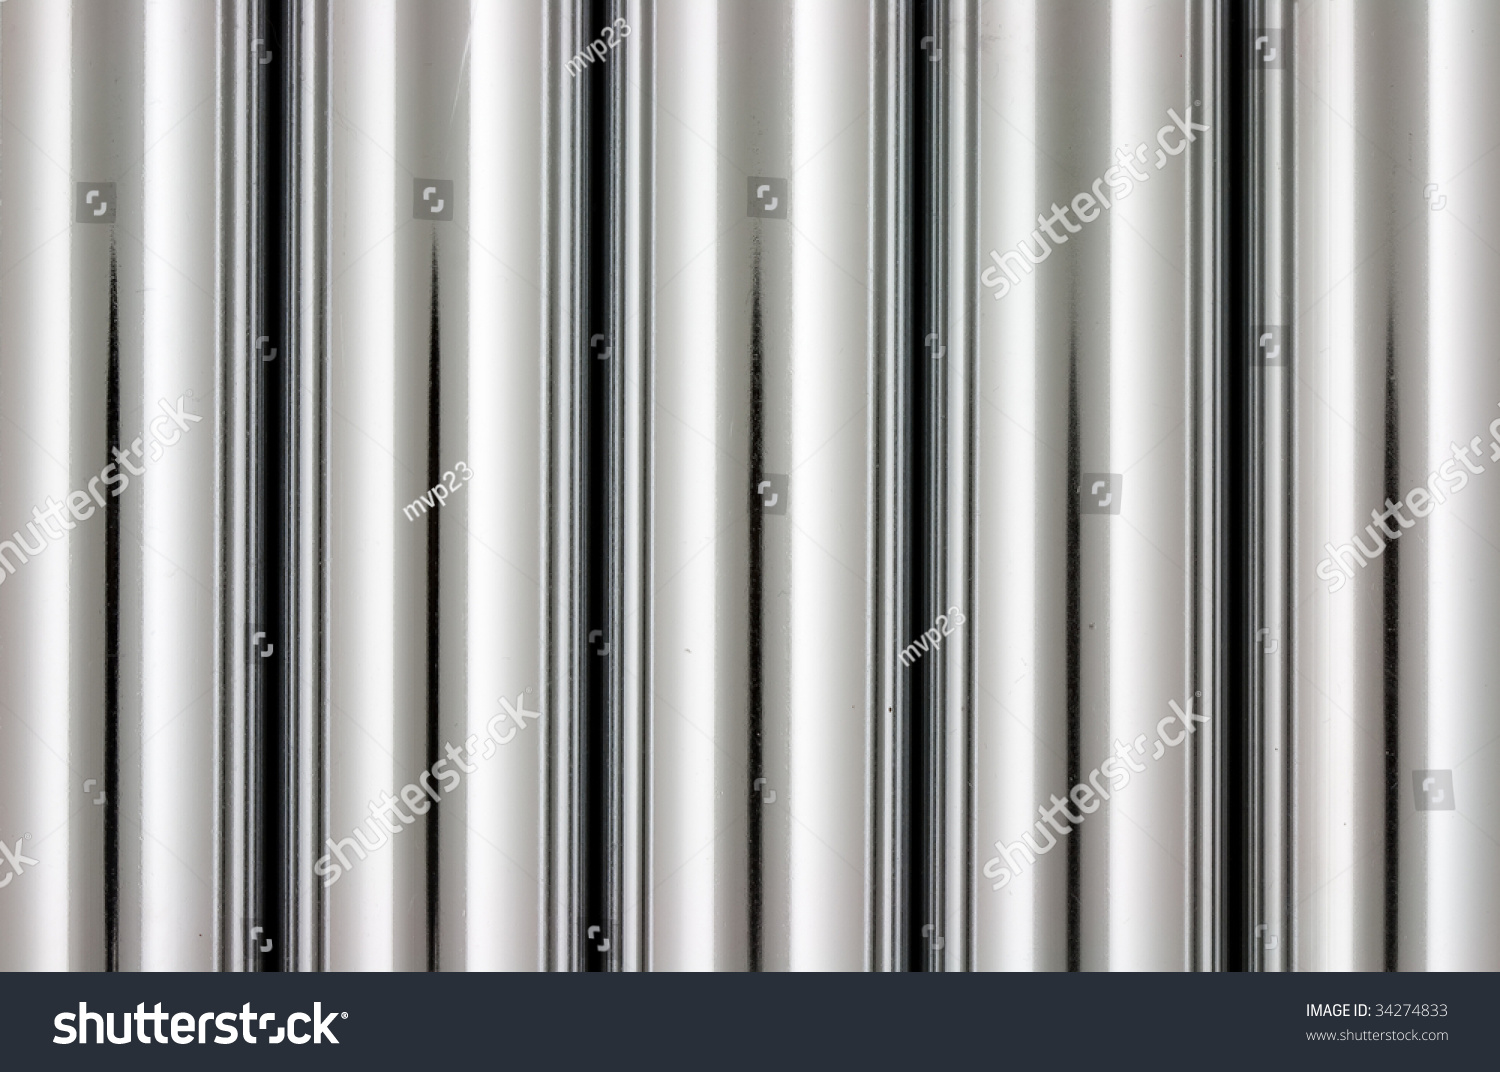 chrome silver pipes abstract background stock photo